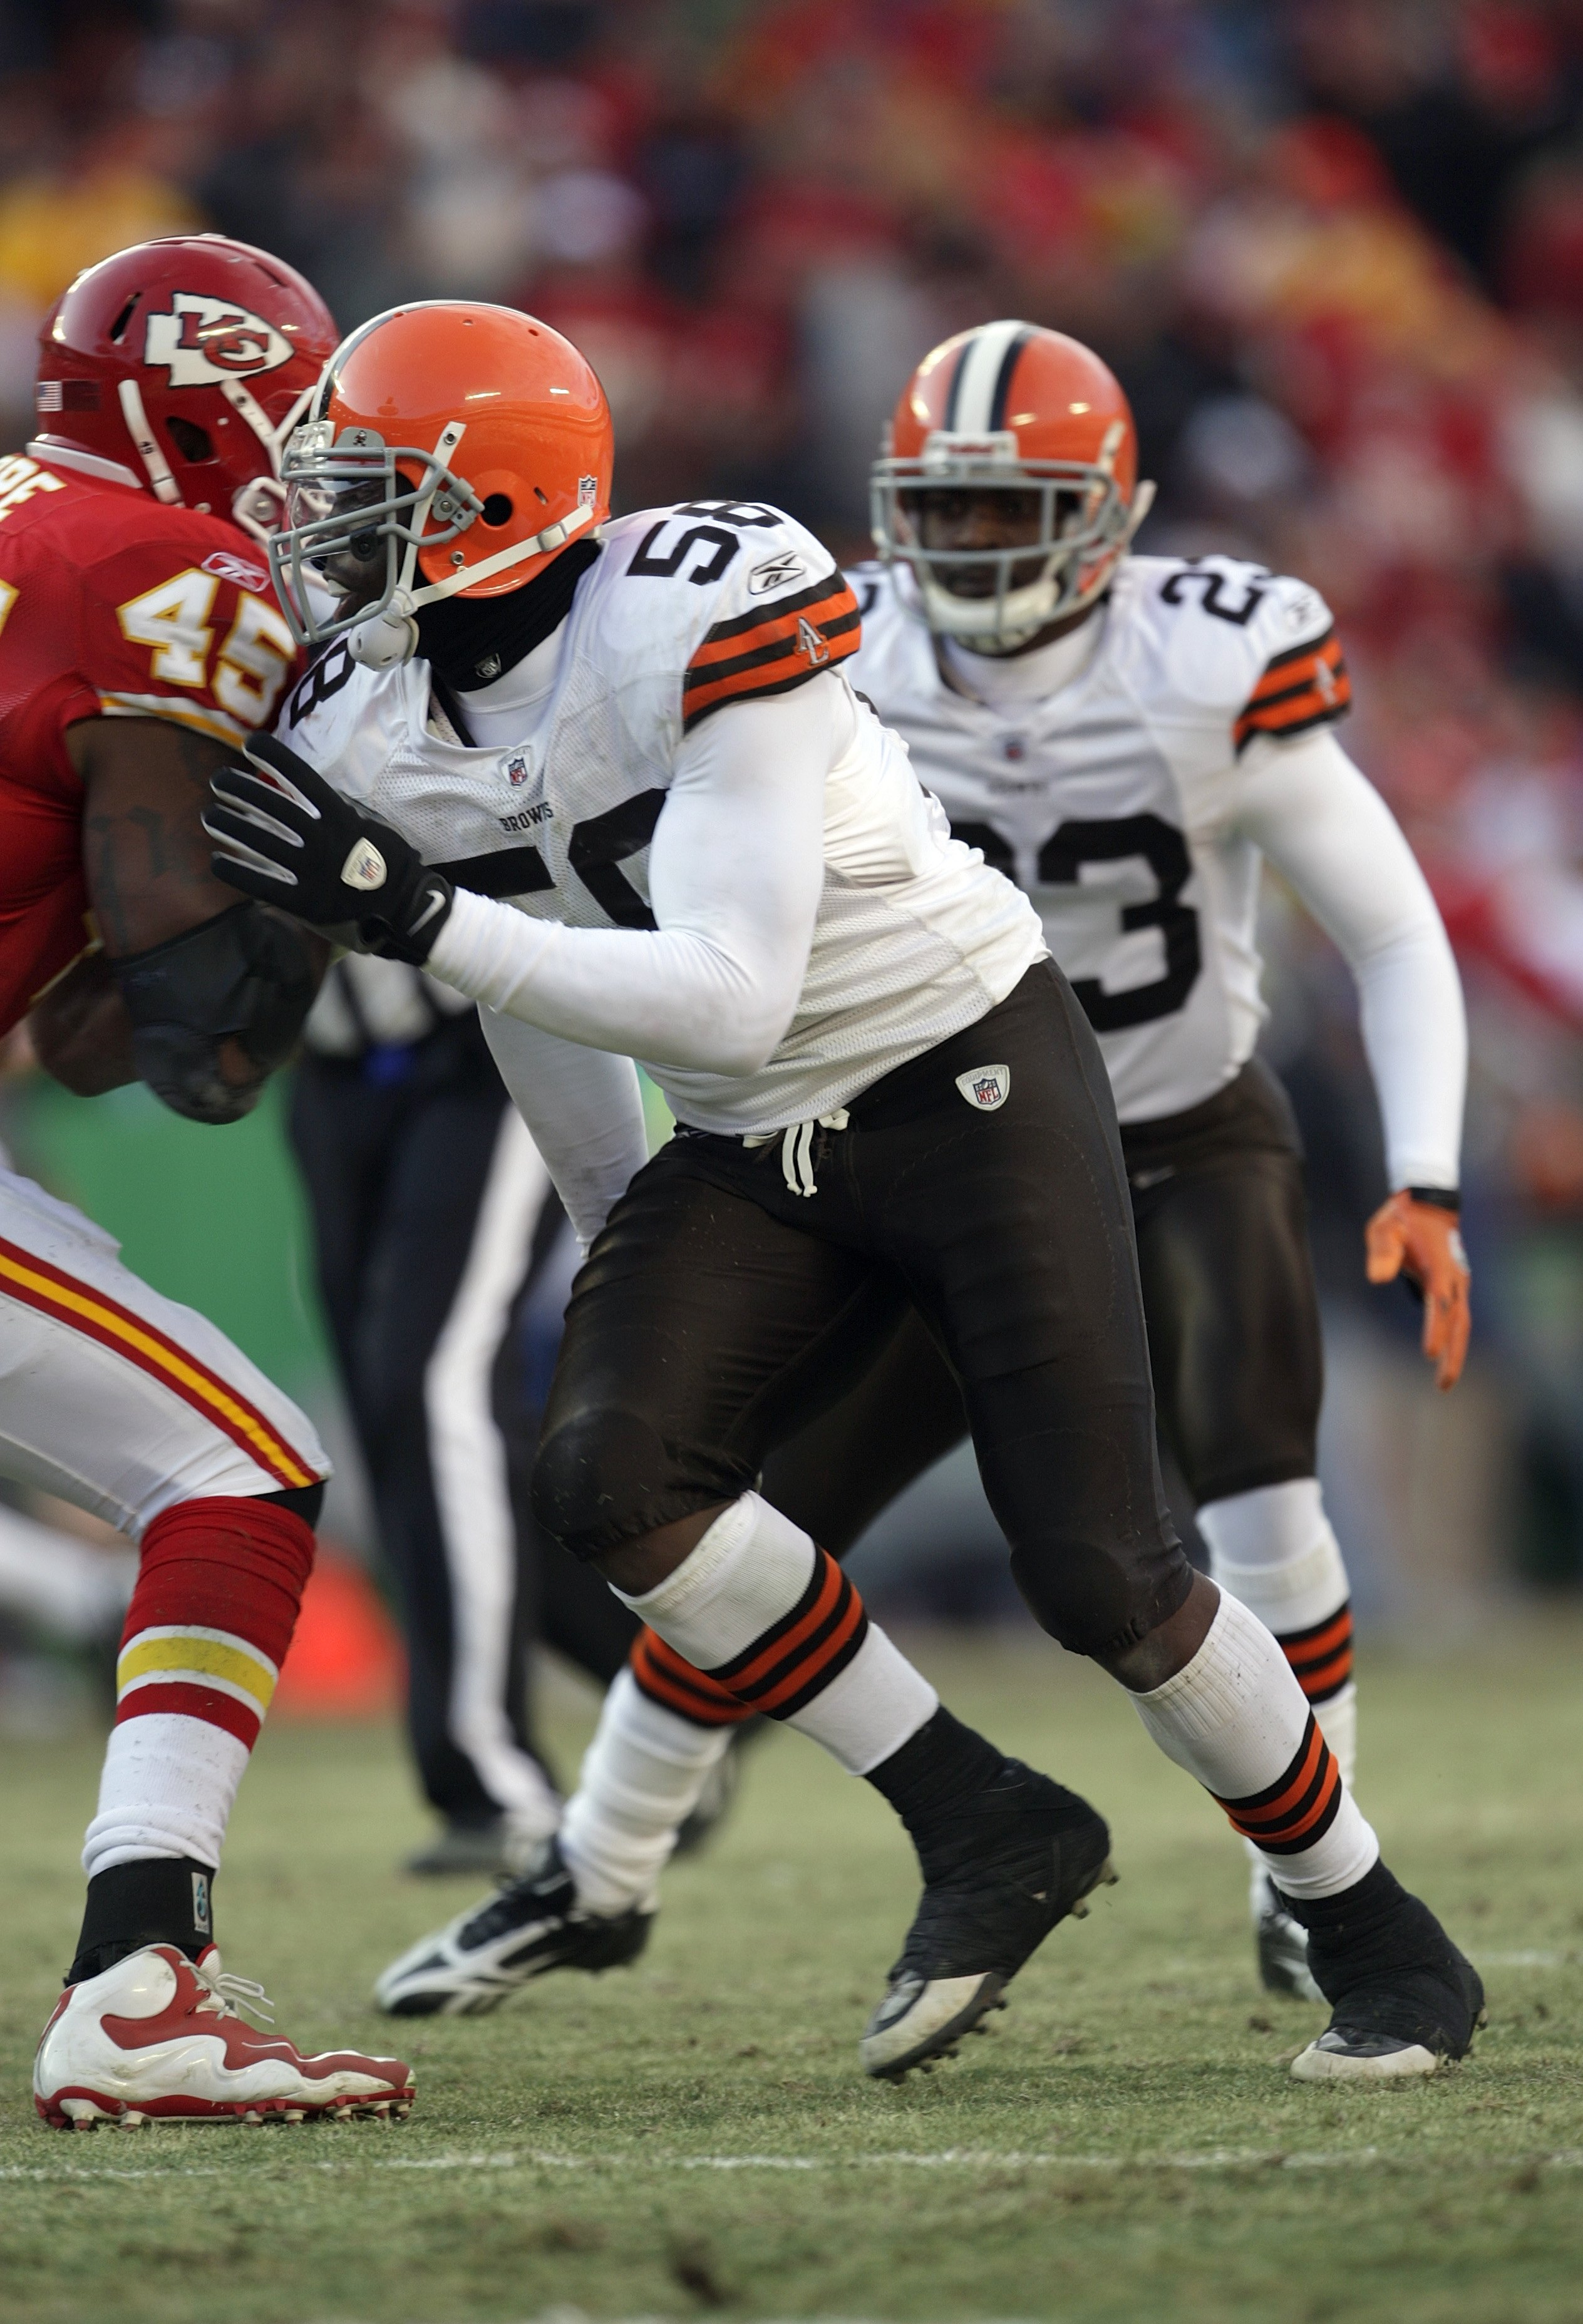 Cleveland Browns Vs Tampa Bay Buccaneers What The Browns Should Have Done Bleacher Report Latest News Videos And Highlights